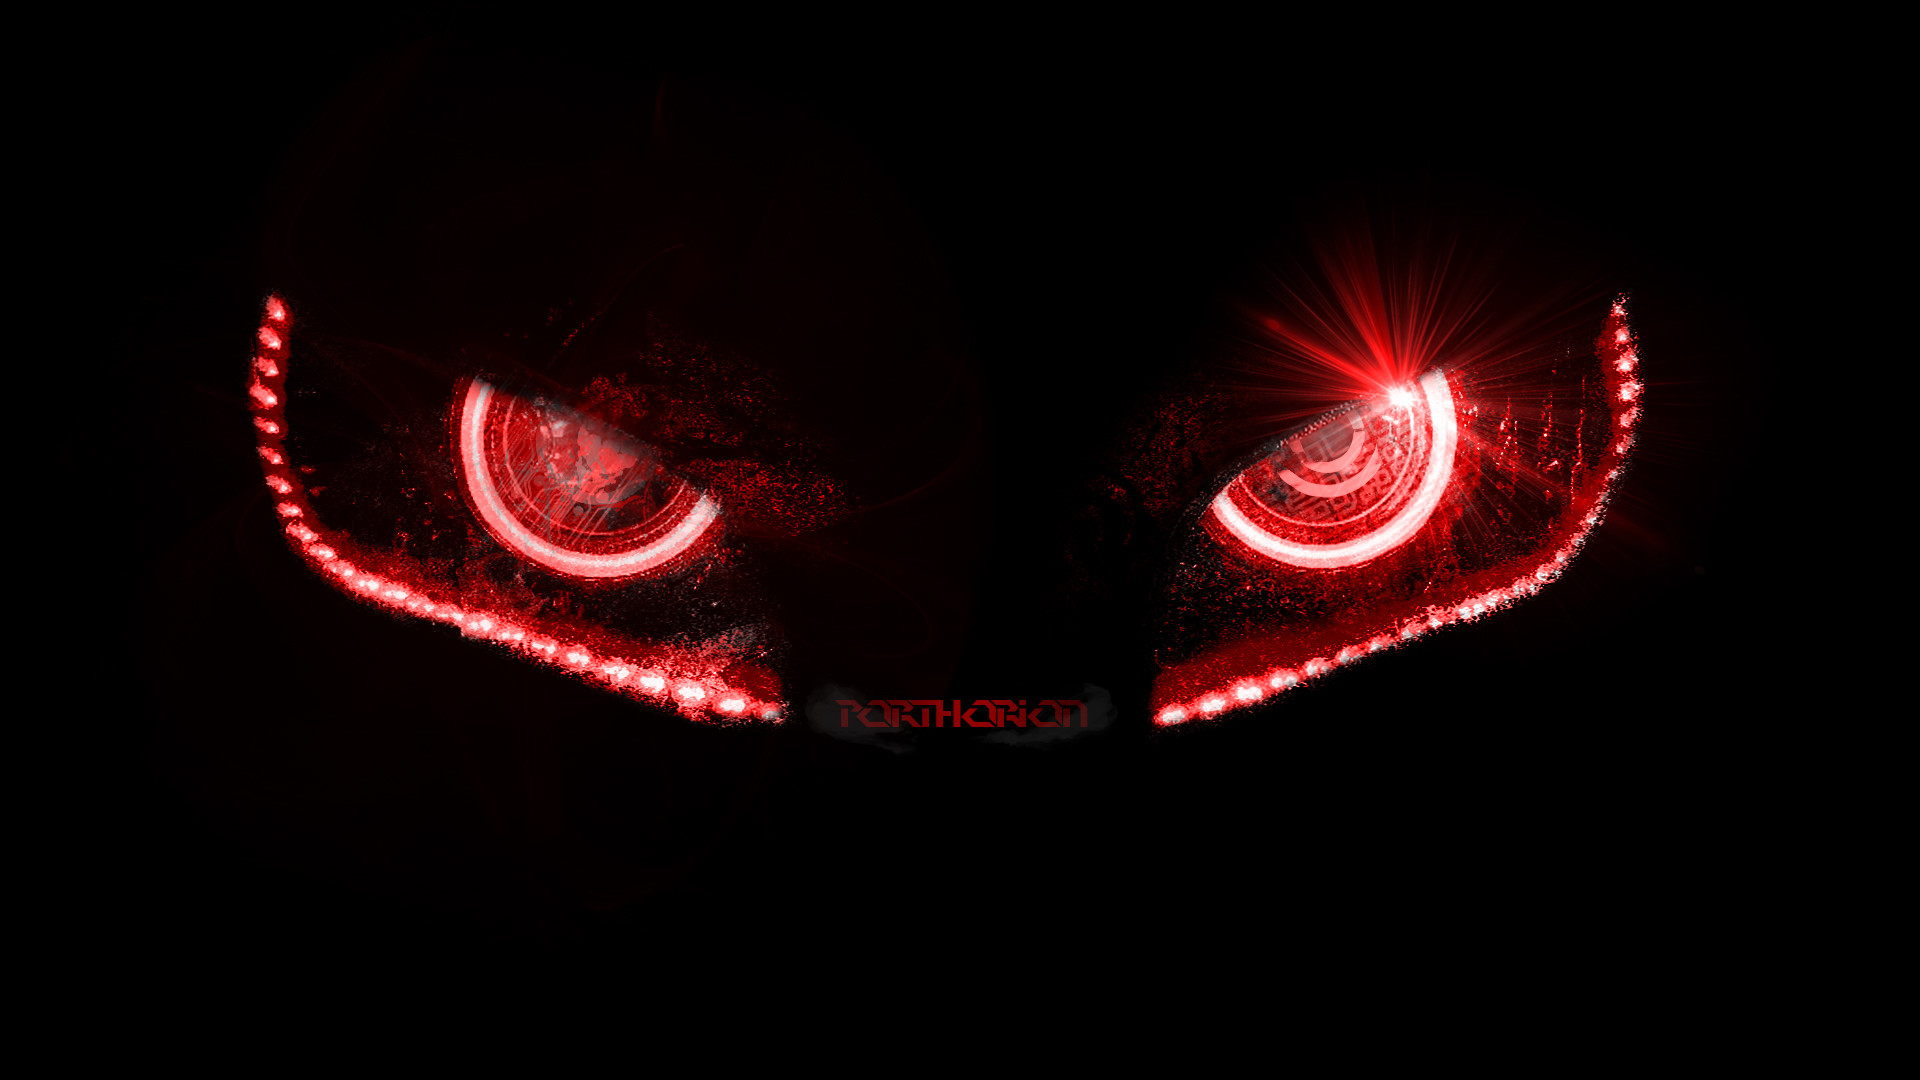 1920x1080 ... Badass Evil Robotic Eyes - without lines by porthorion